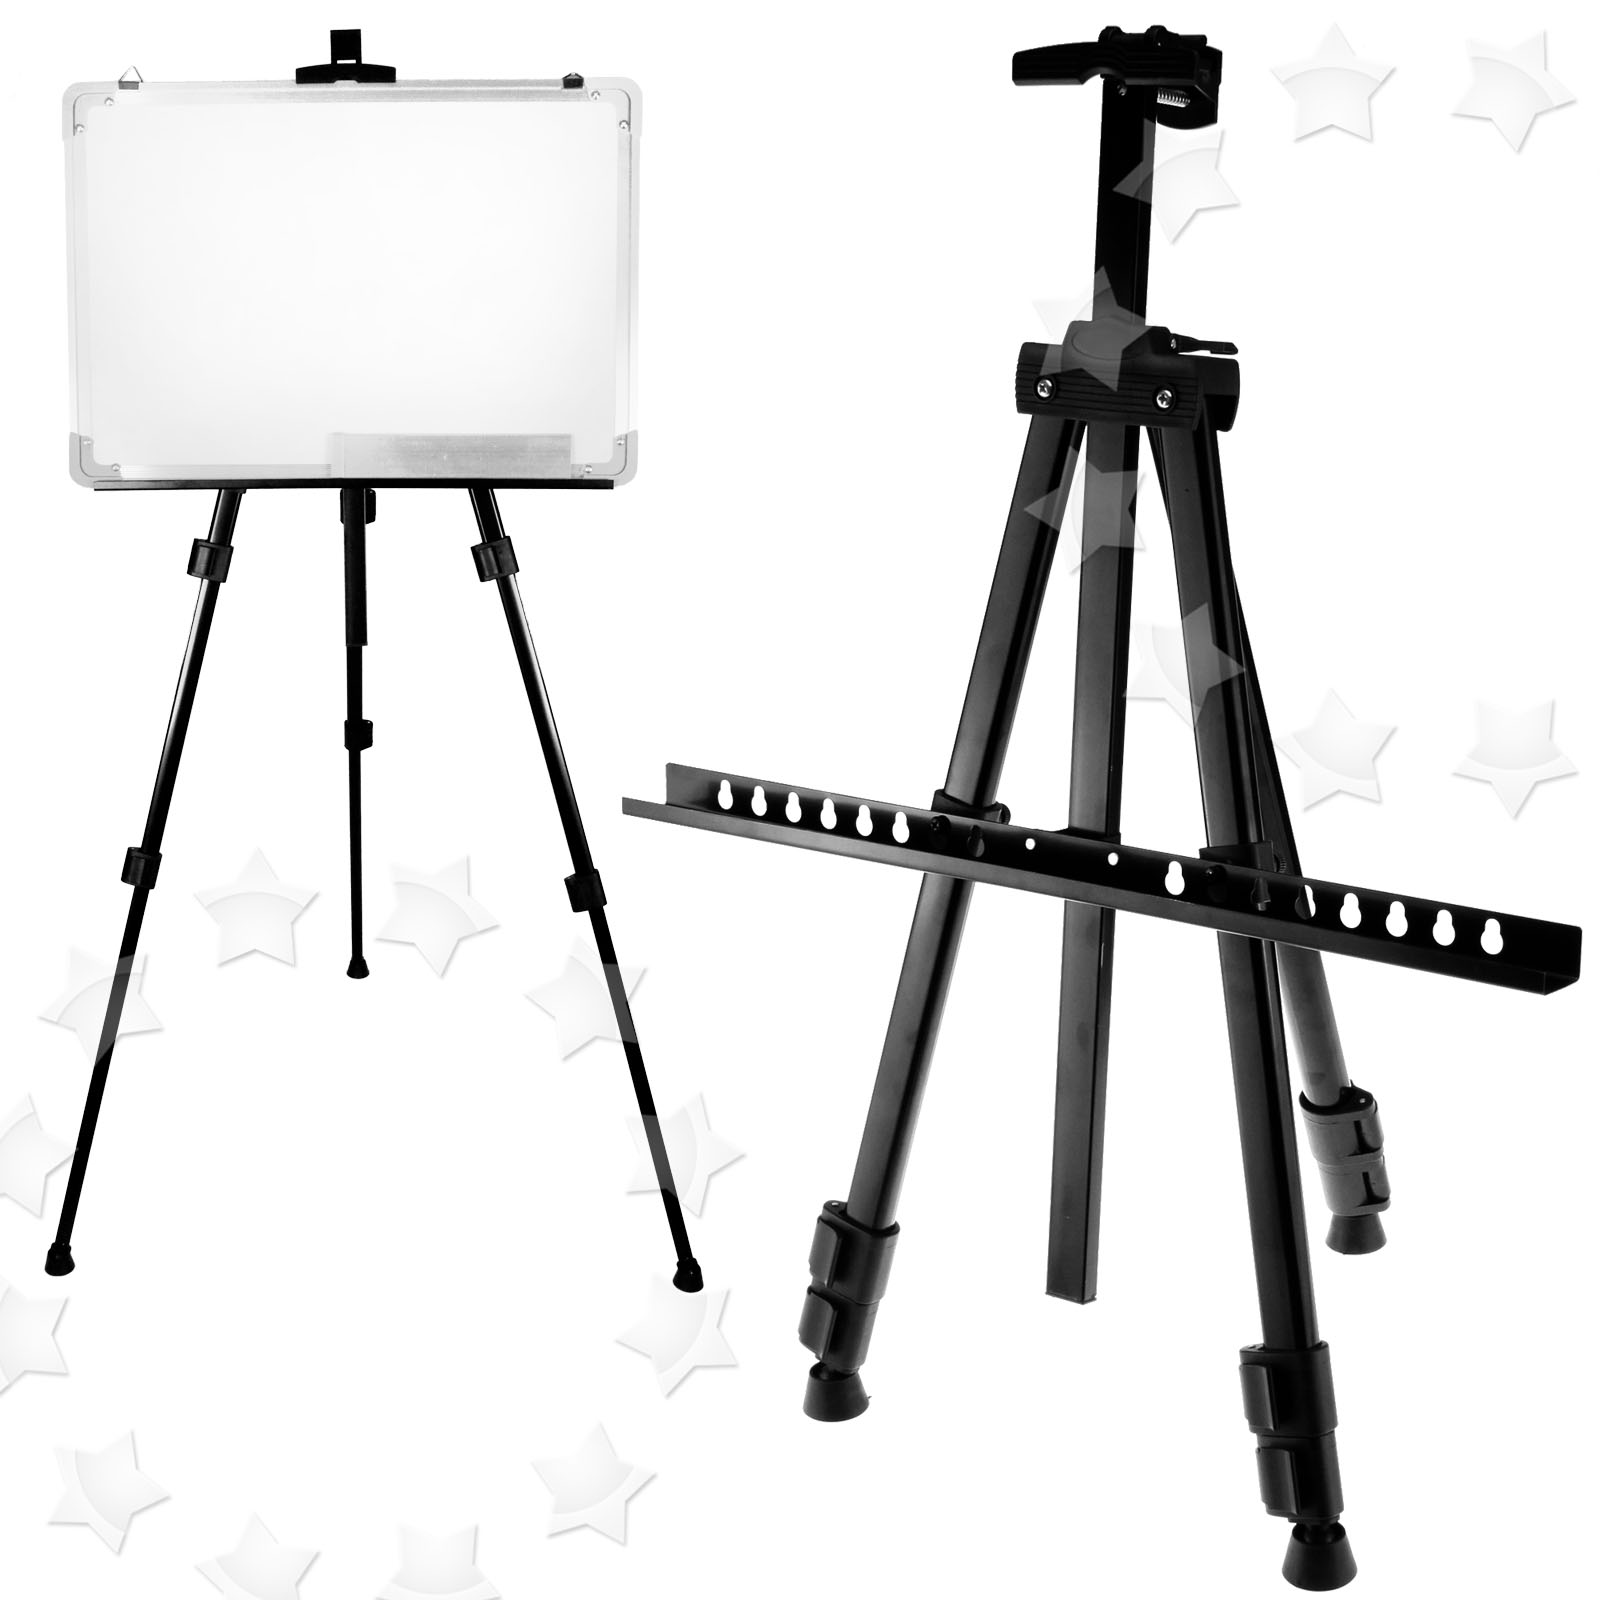 ARTIST FIELD STUDIO EASEL DISPLAY PAINTING WHITE BOARD